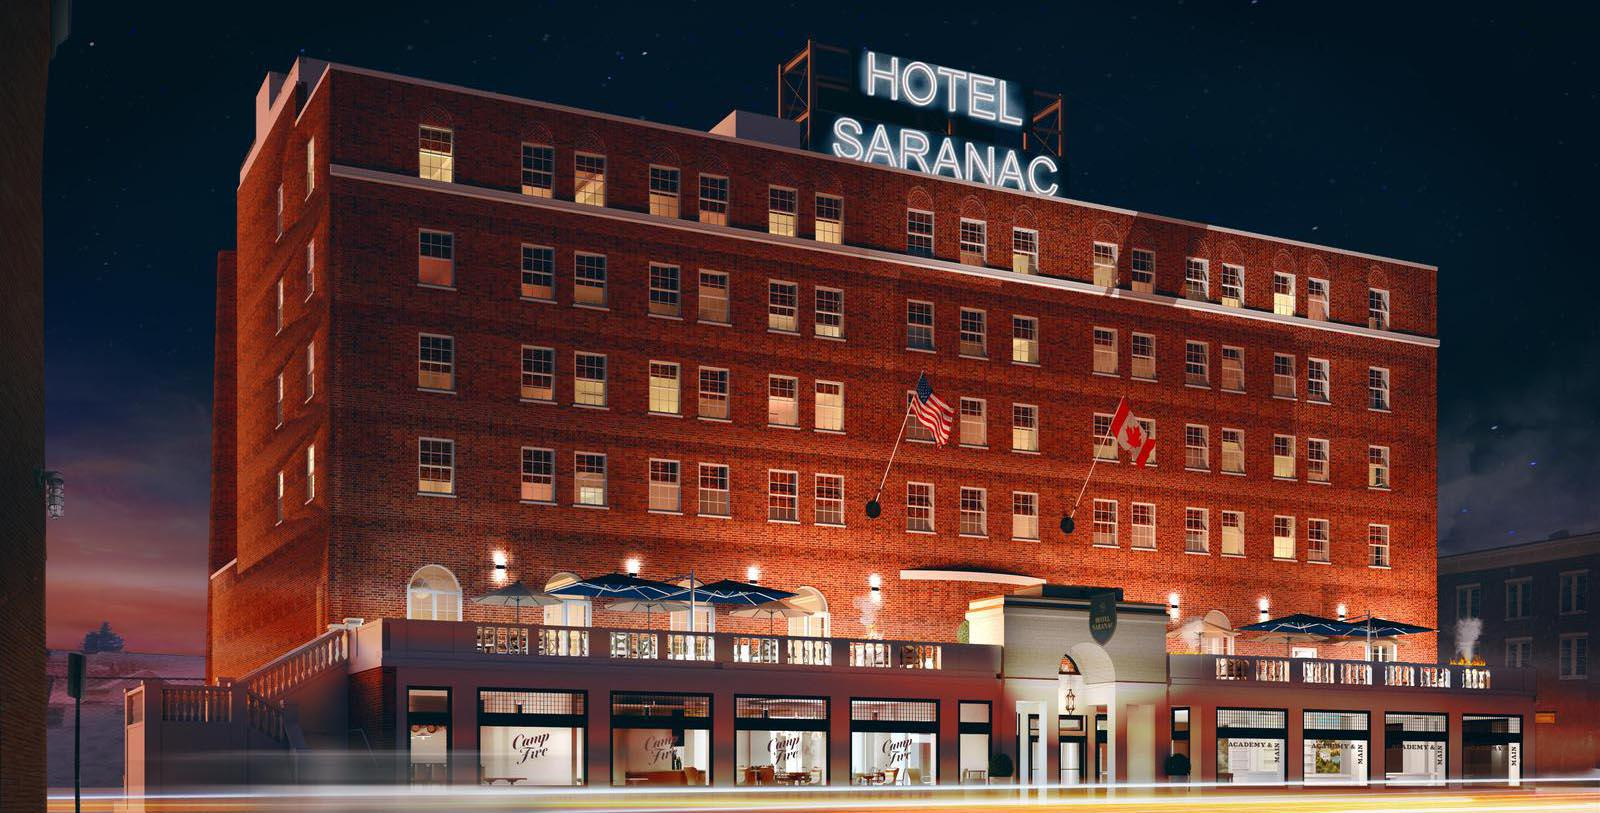 Image of Exterior at Night, Hotel Saranac, Curio Collection by Hilton in Saranac Lake, New York, 1927, Member of Historic Hotels of America, Overview